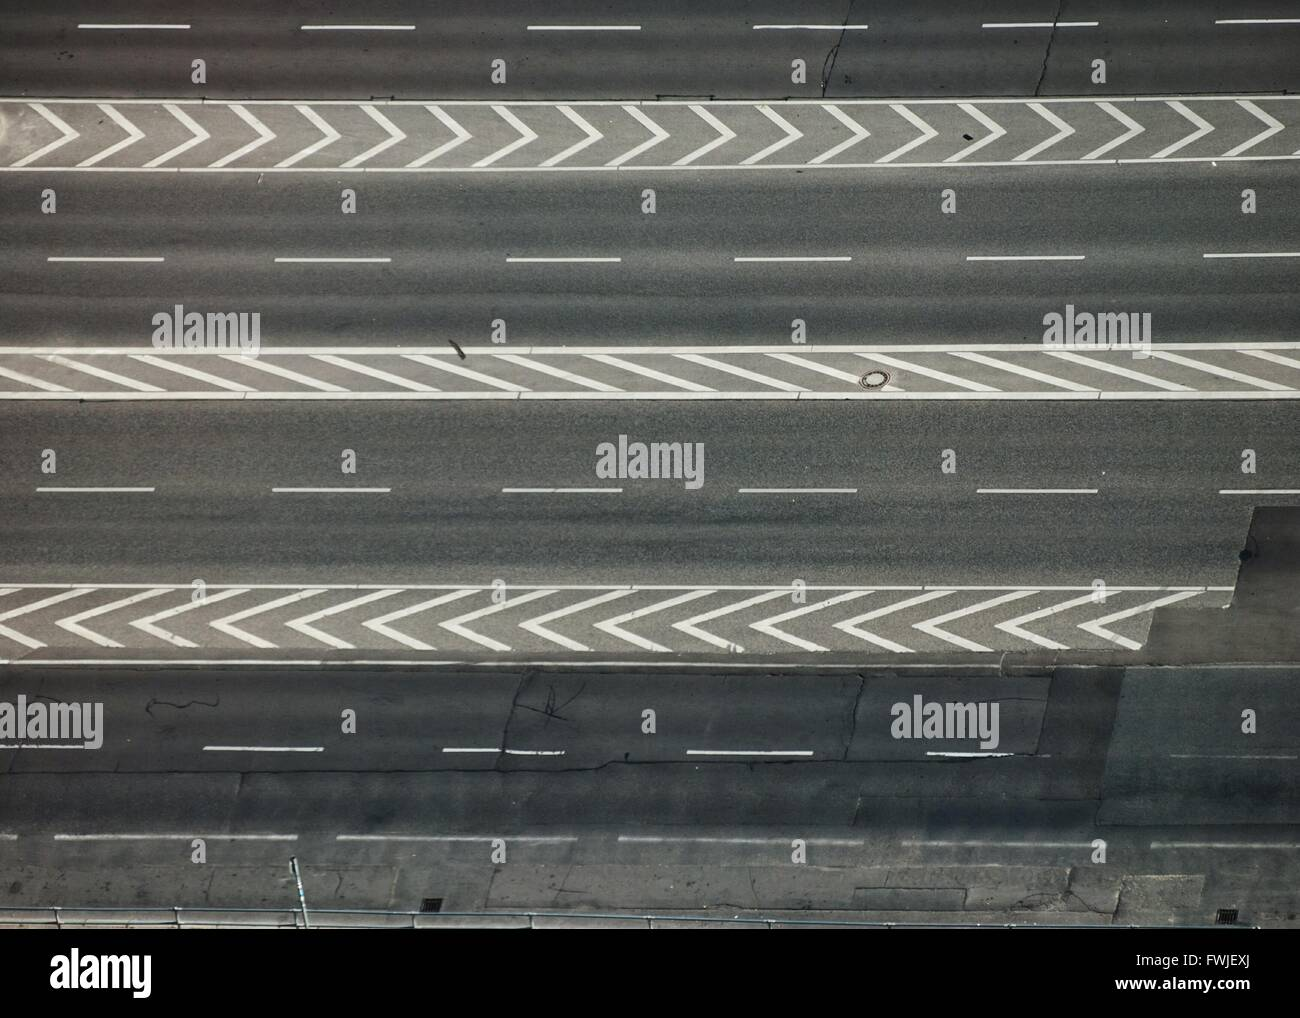 High Angle View Of Markings On Road - Stock Image